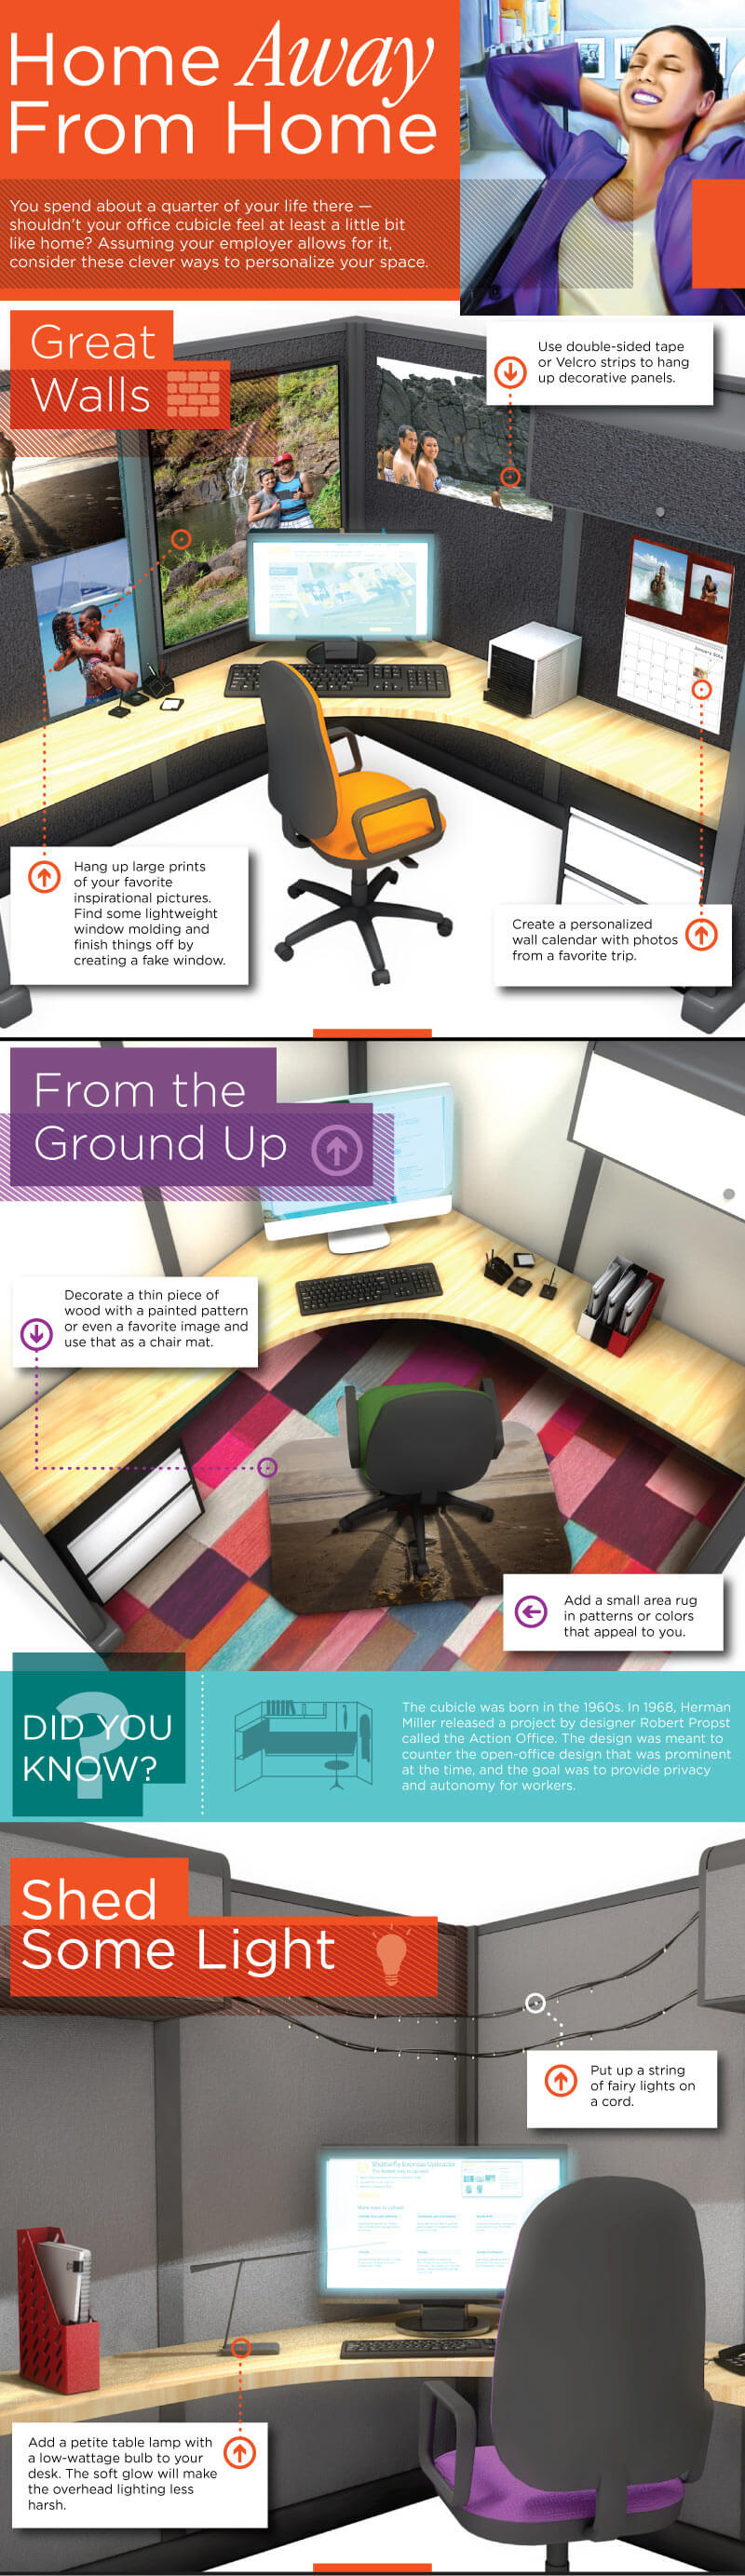 How to Decorate an Office